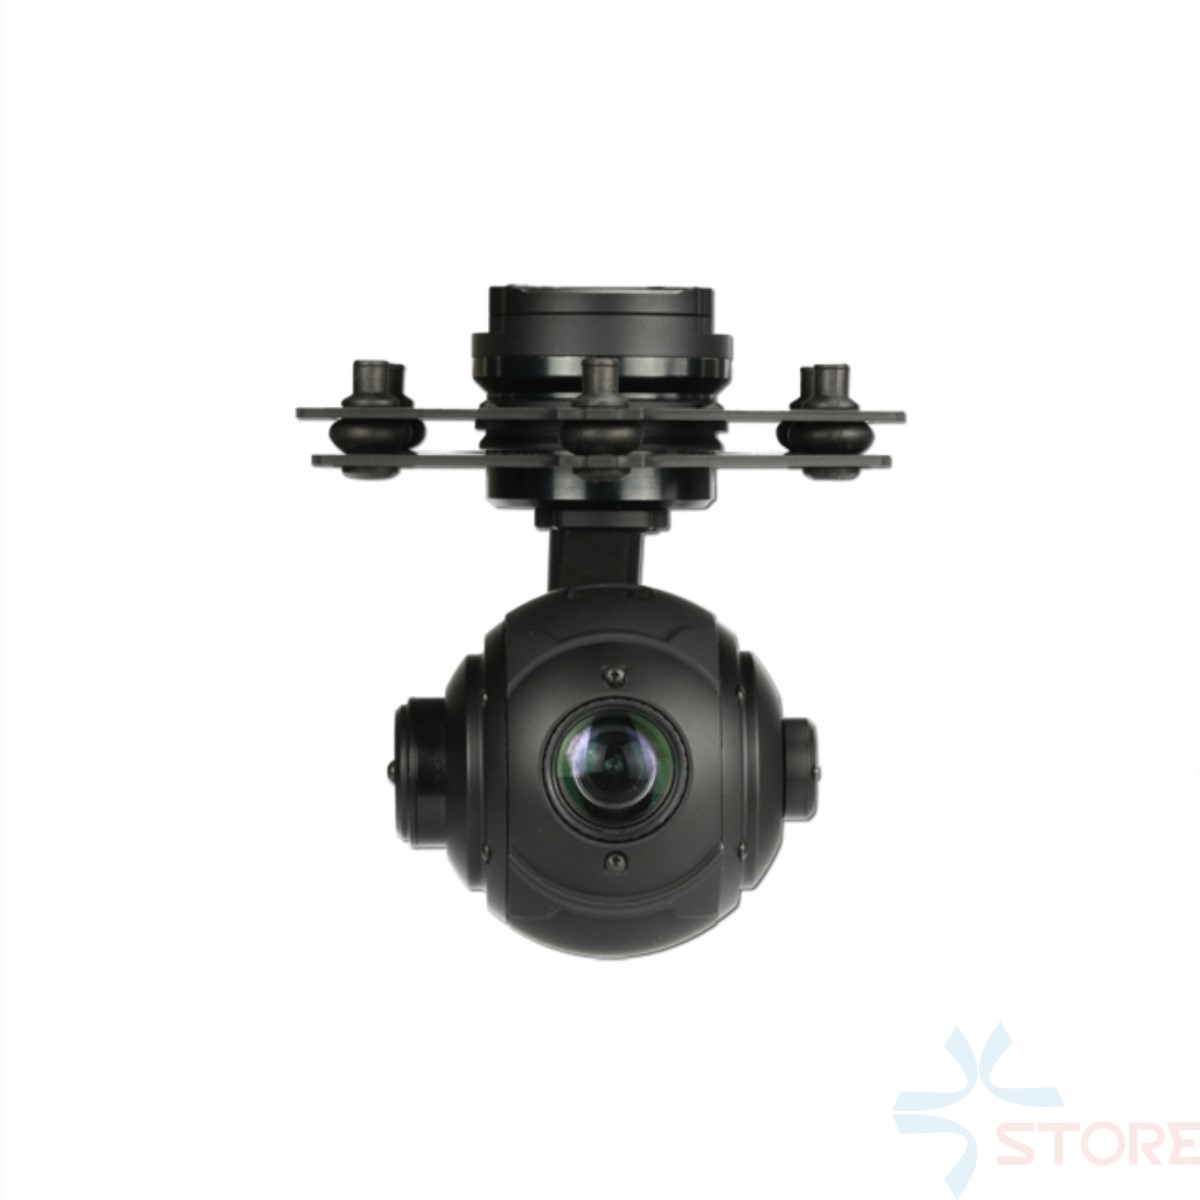 TAROT PEEPER 10X Optical Zooming 3-axis Gimbal Spherical High Definition With HD Camera For UAV Model Aircraft enthusiasts.